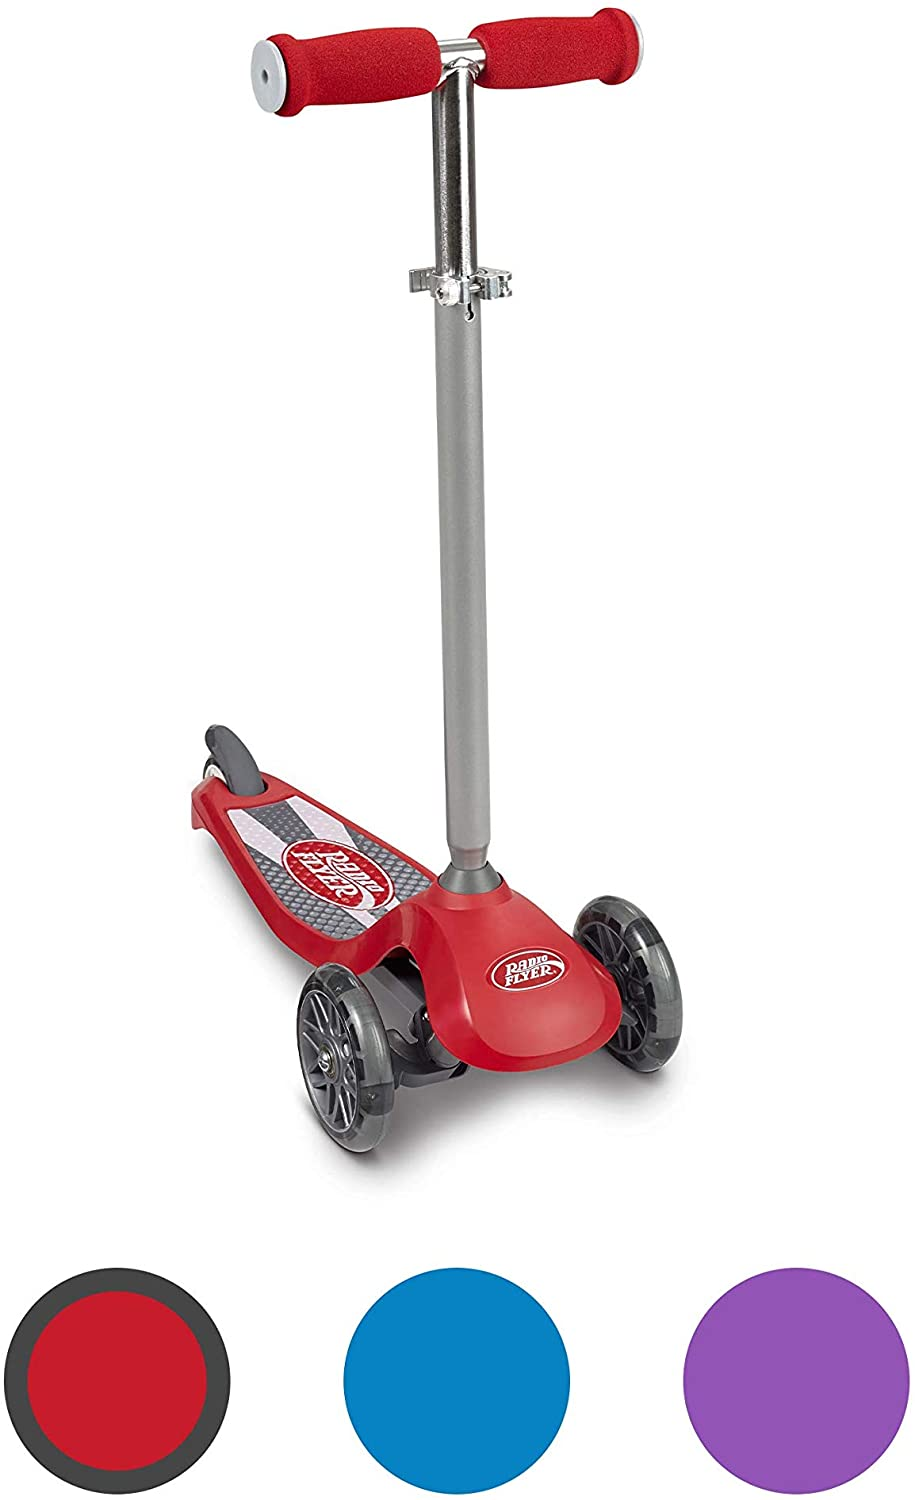 Radio Flyer Lean 'N Glide Scooter with Light Up Wheels Vehicle (549X), Red